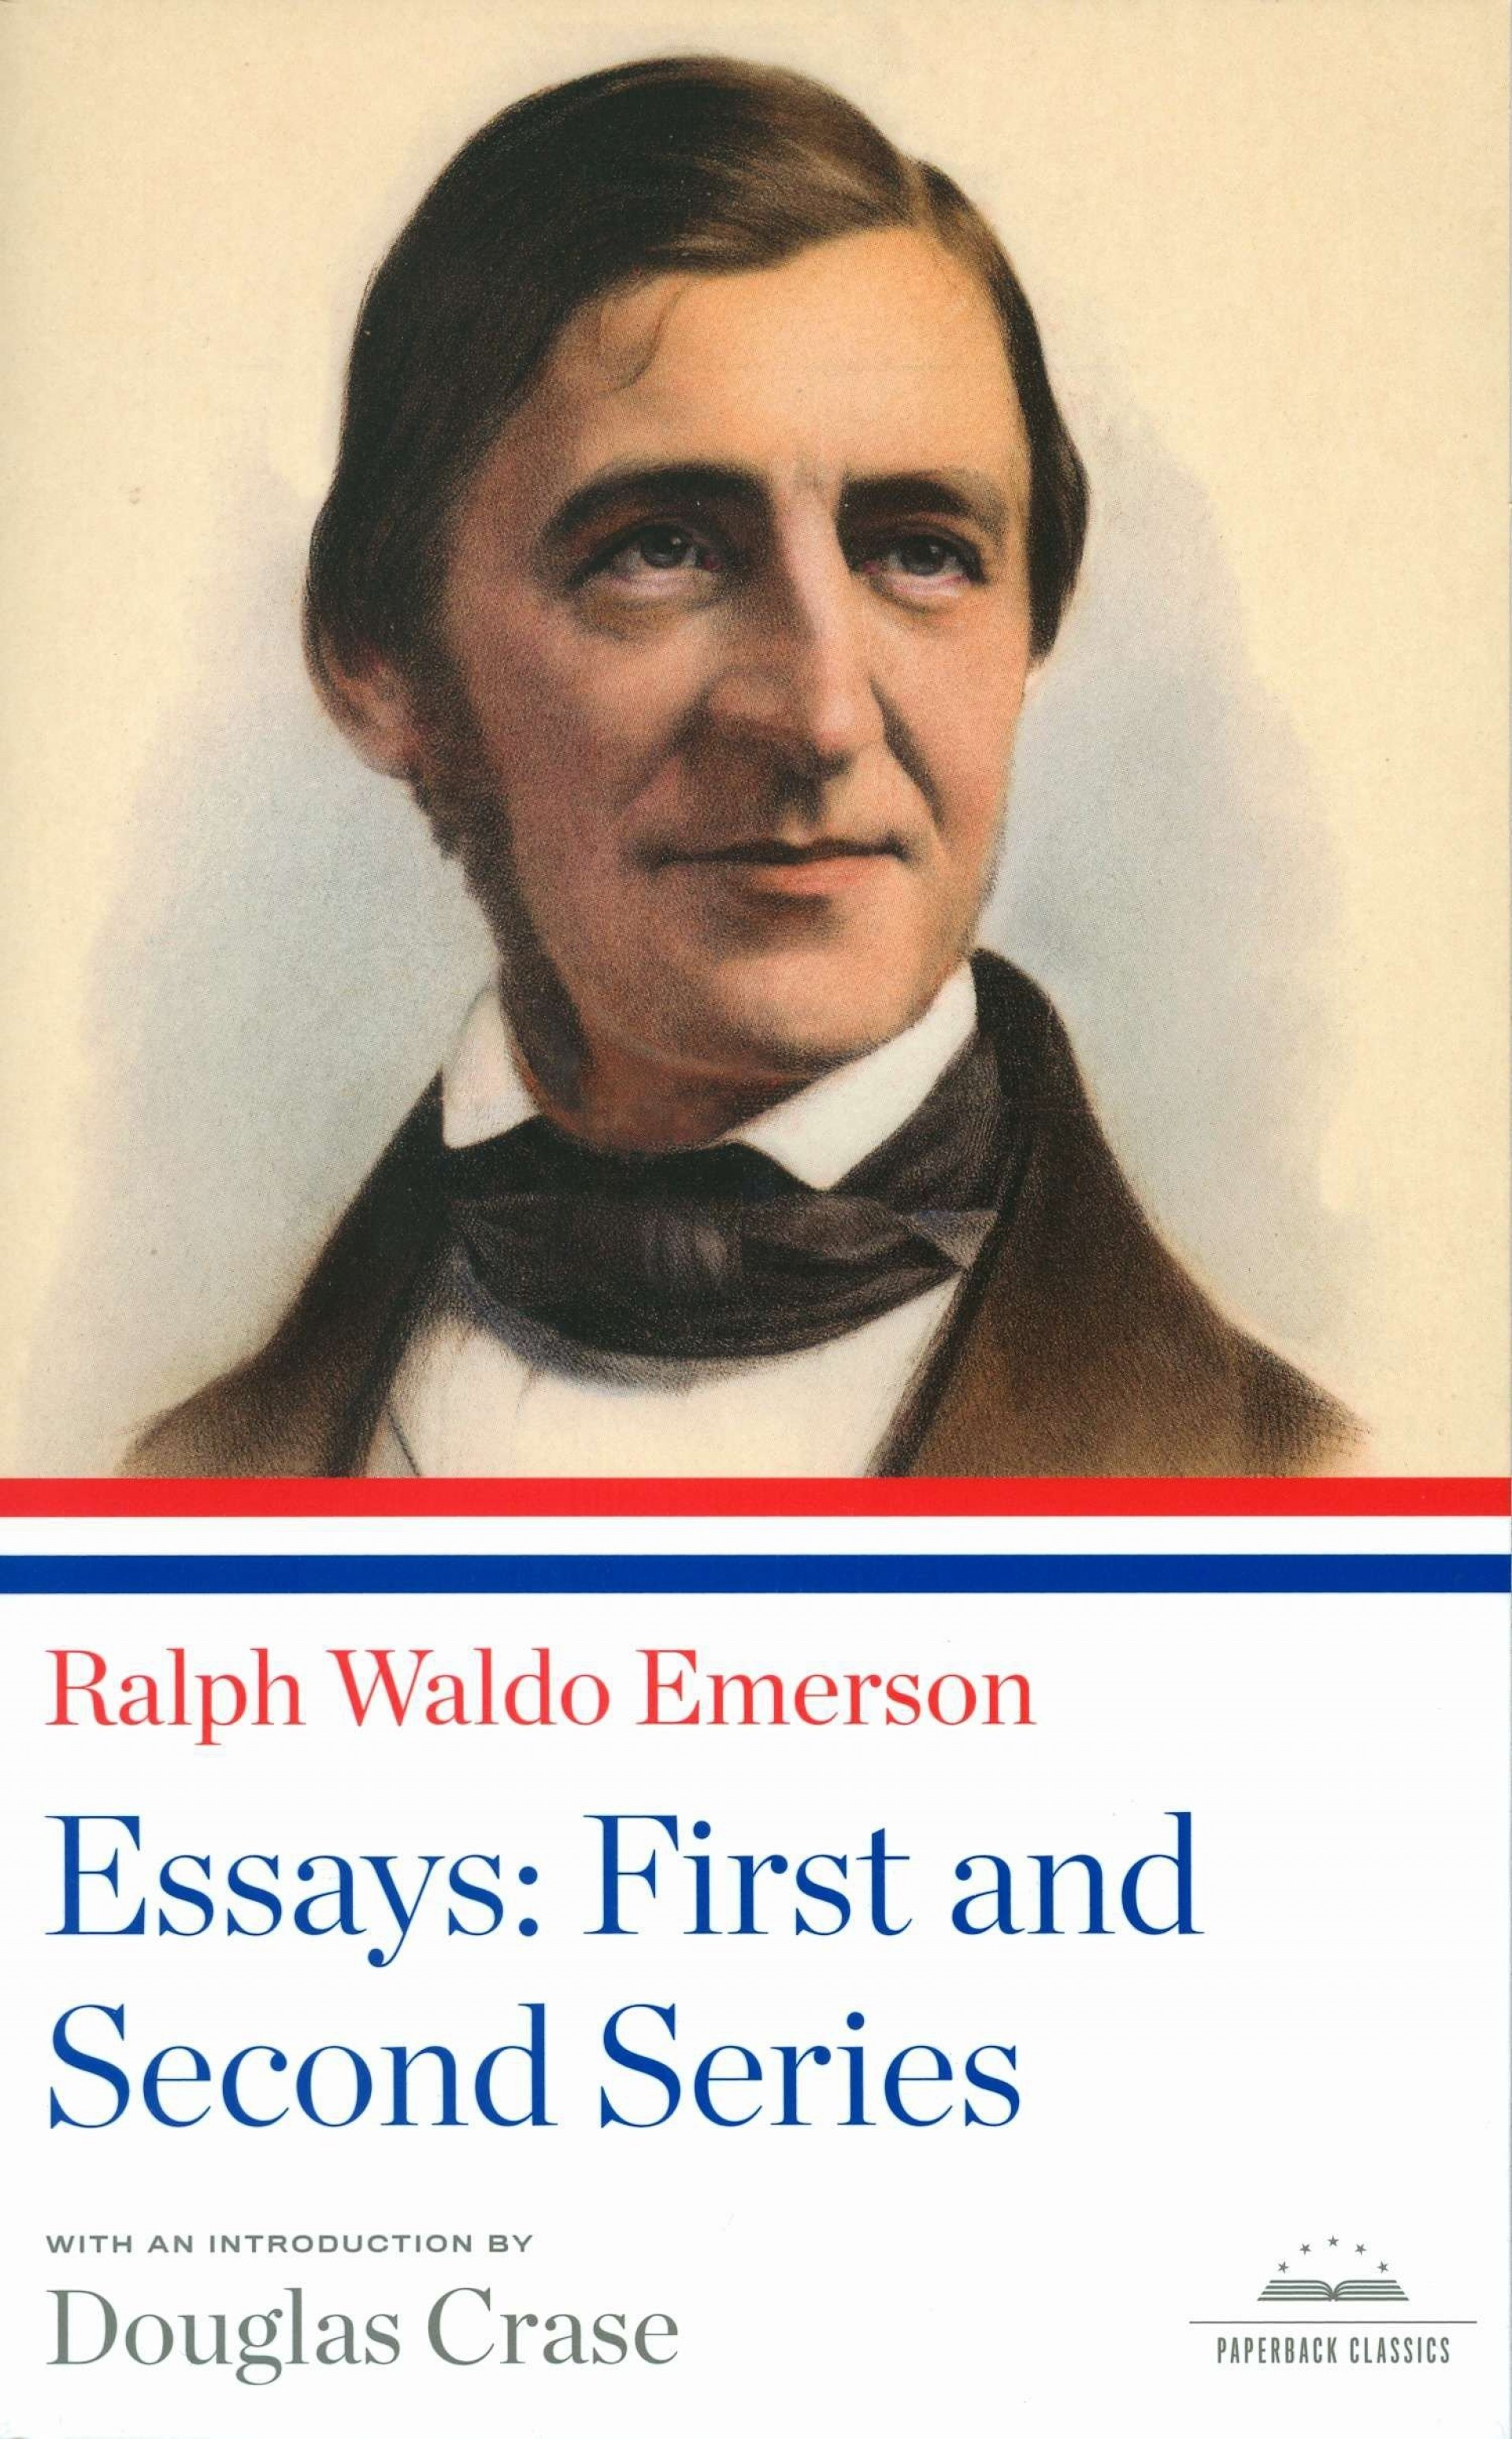 005 81bbtjzup6l Essay Example Emerson Dreaded Essays Self Reliance And Other Second Series Nature 1920